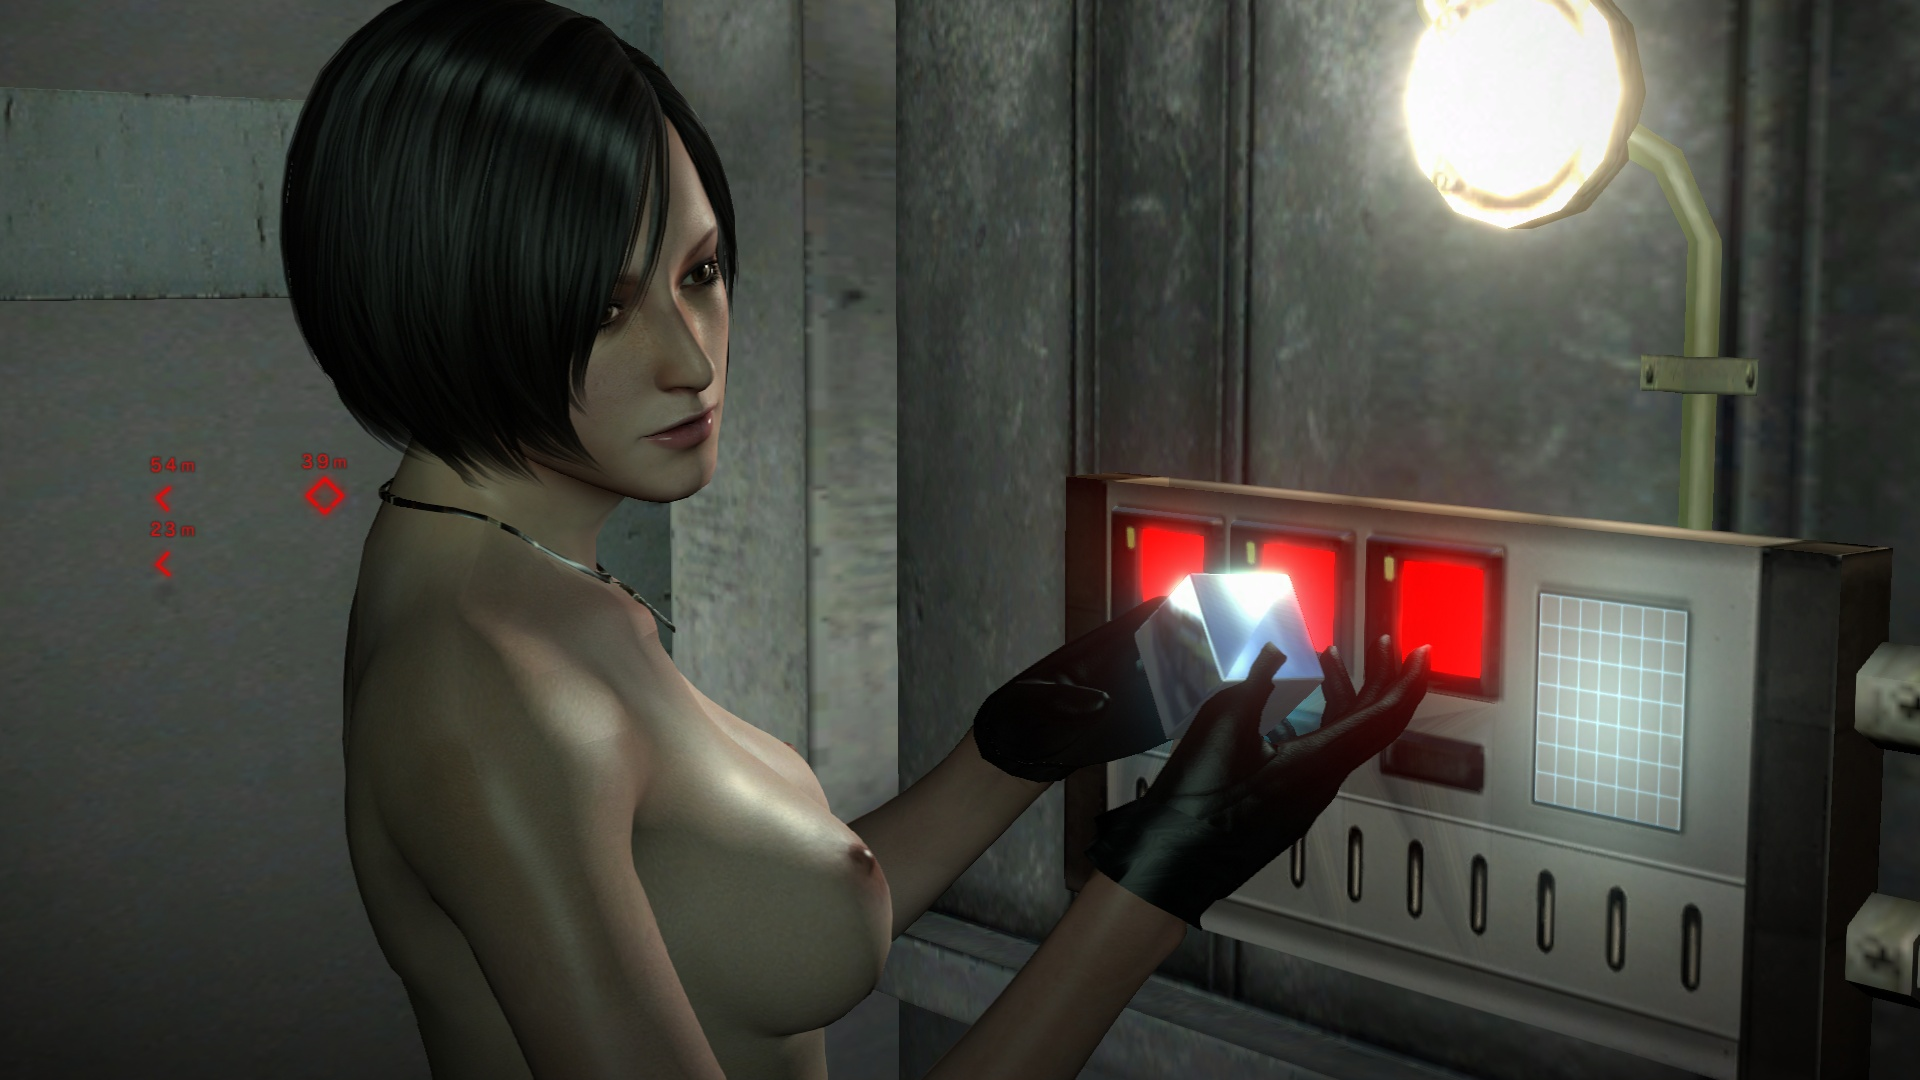 Porn pitchers of ada wong hardcore gallery